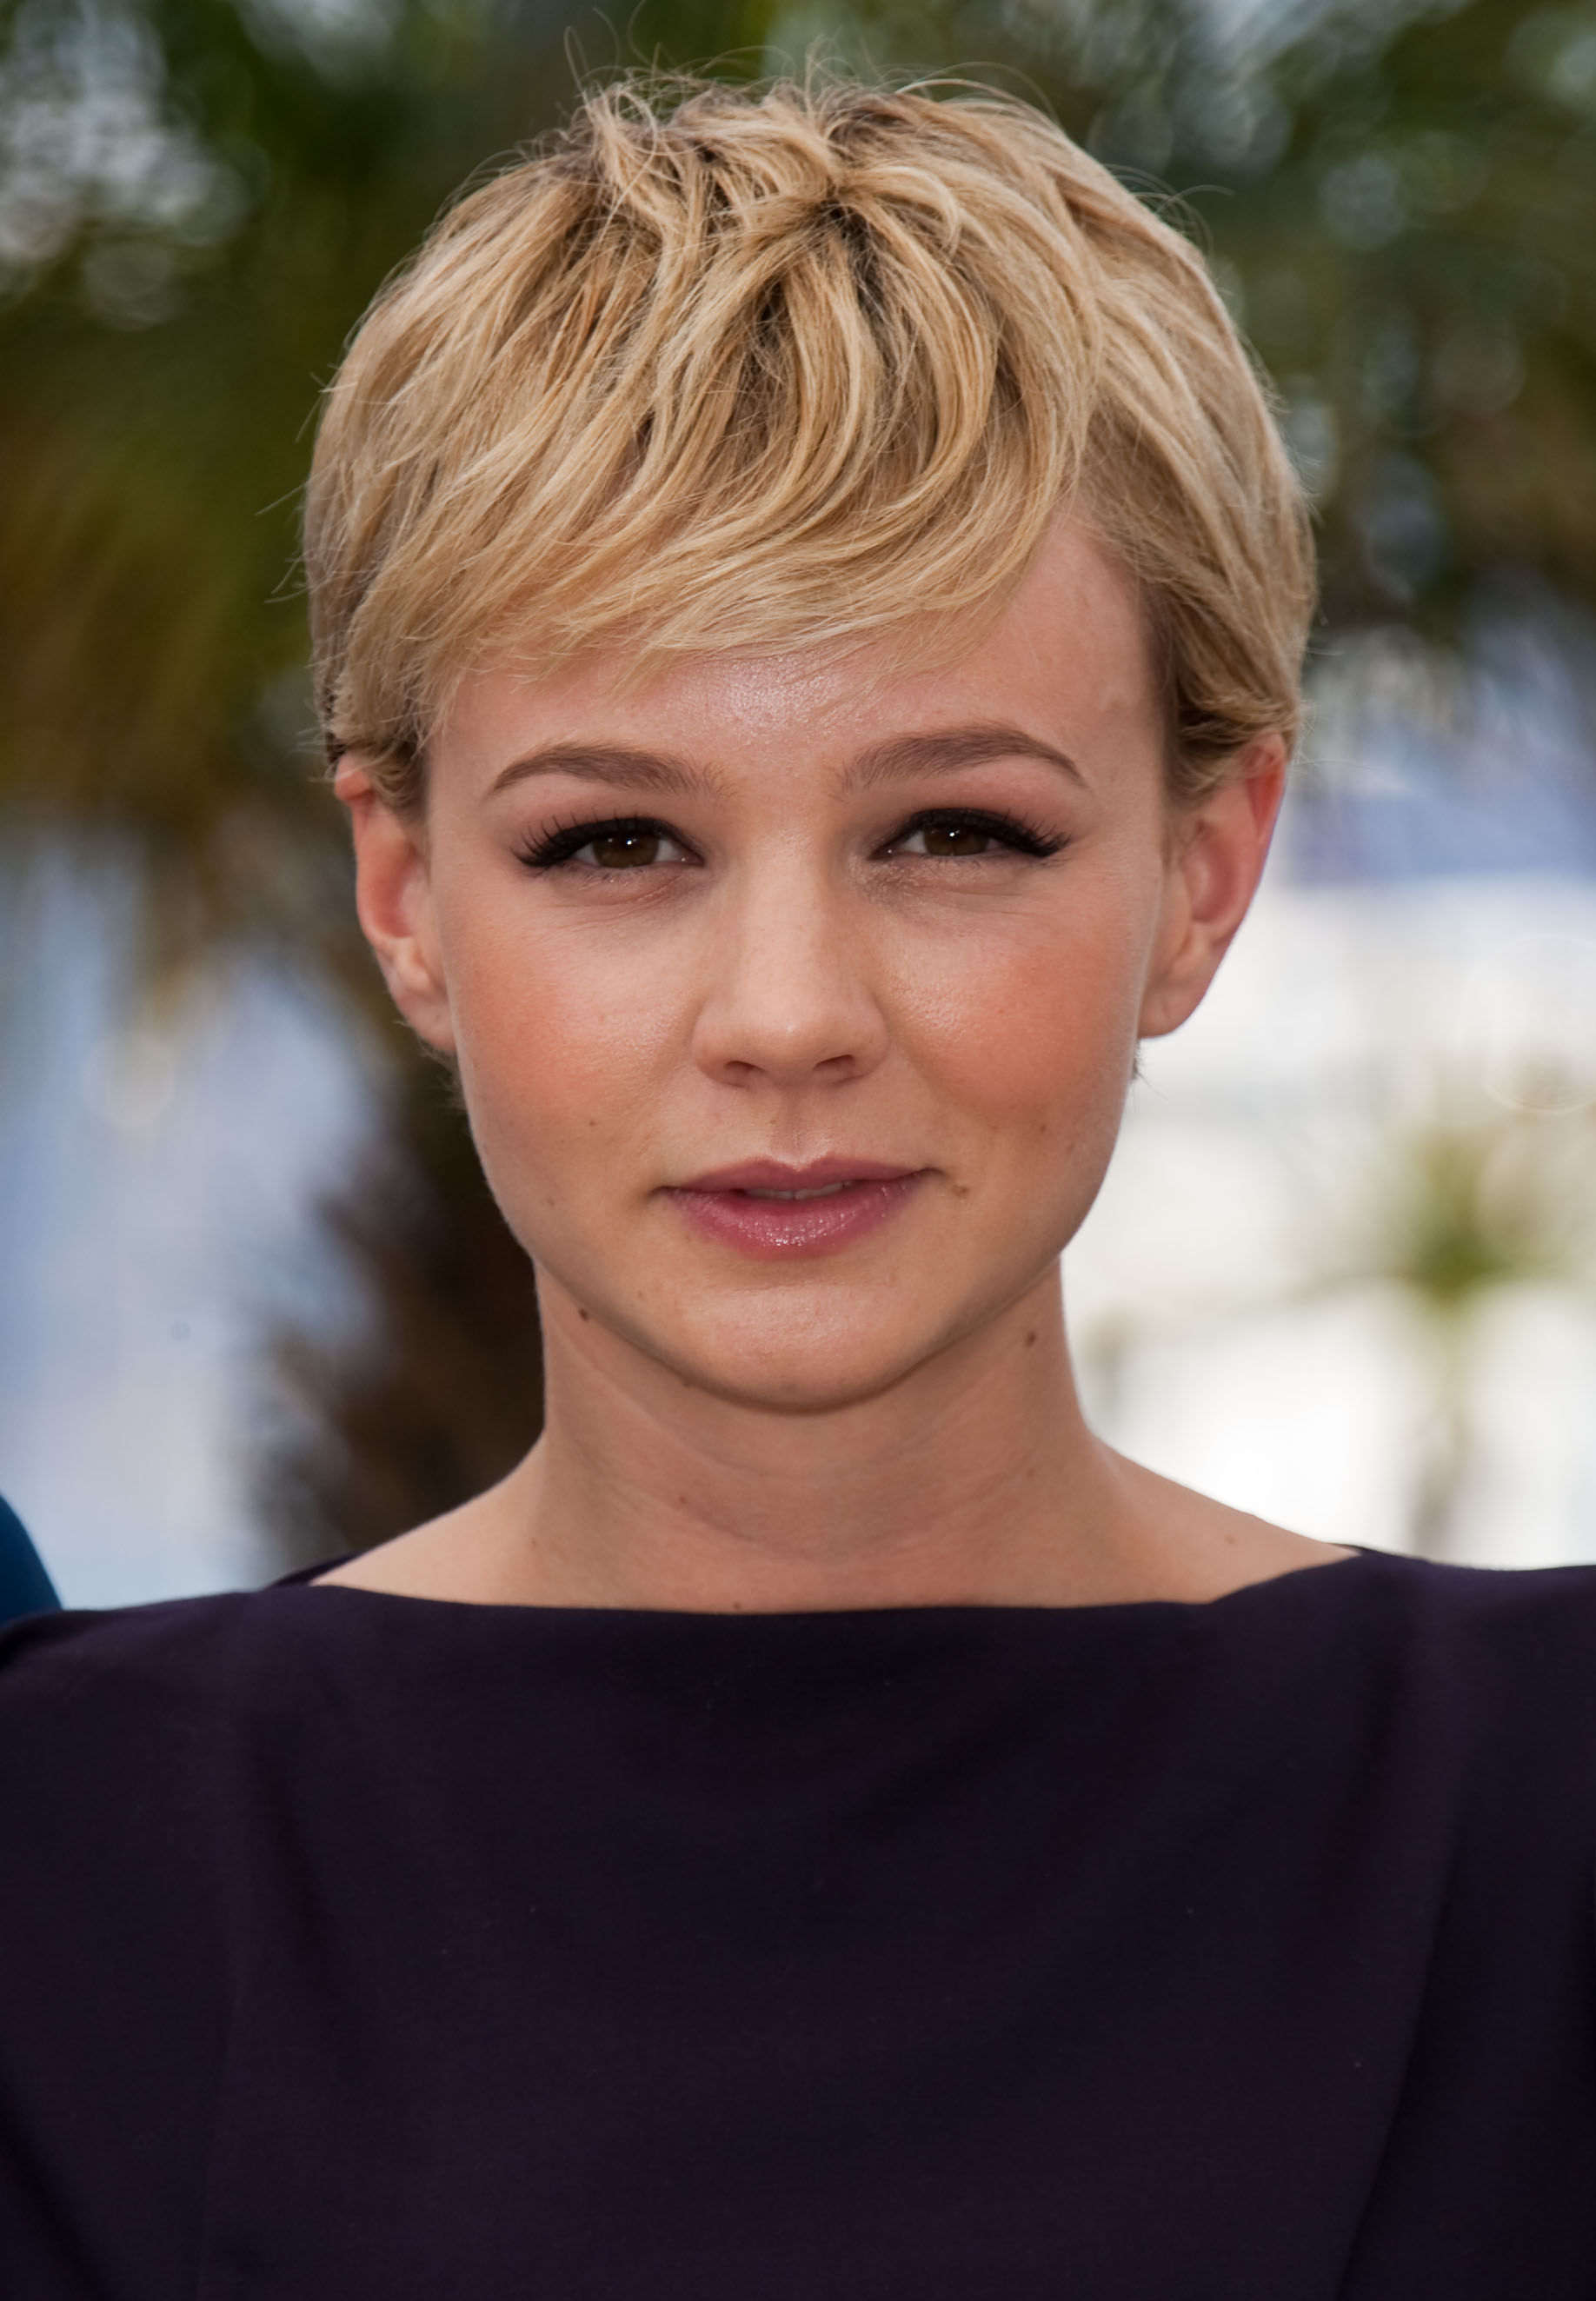 Should I get a pixie cut?: Carey Mulligan with a short blonde sweeping pixie cut